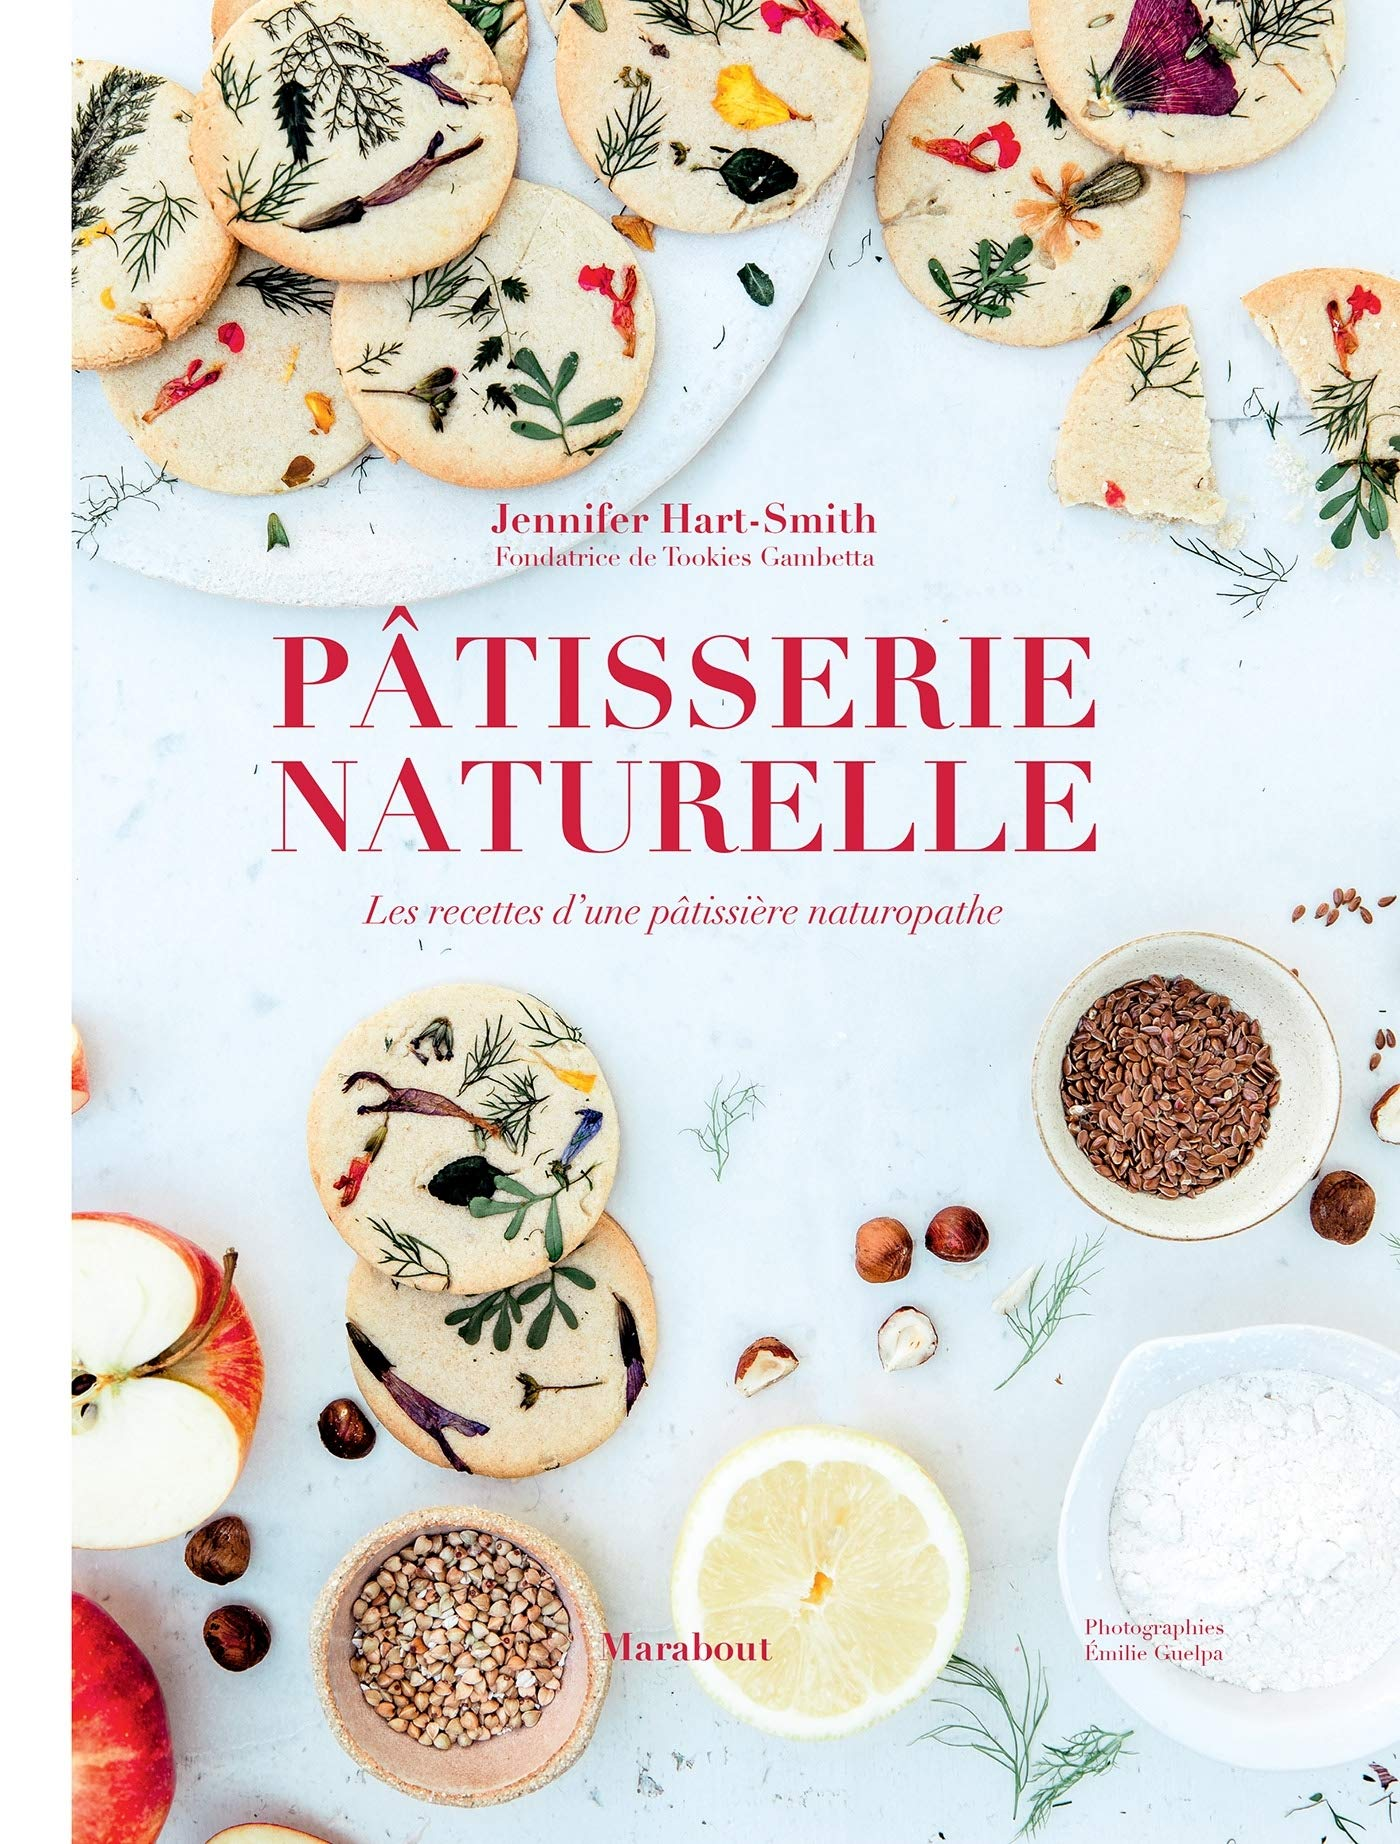 Amazon.fr , Pâtisserie naturelle , Jennifer Hart,Smith , Livres